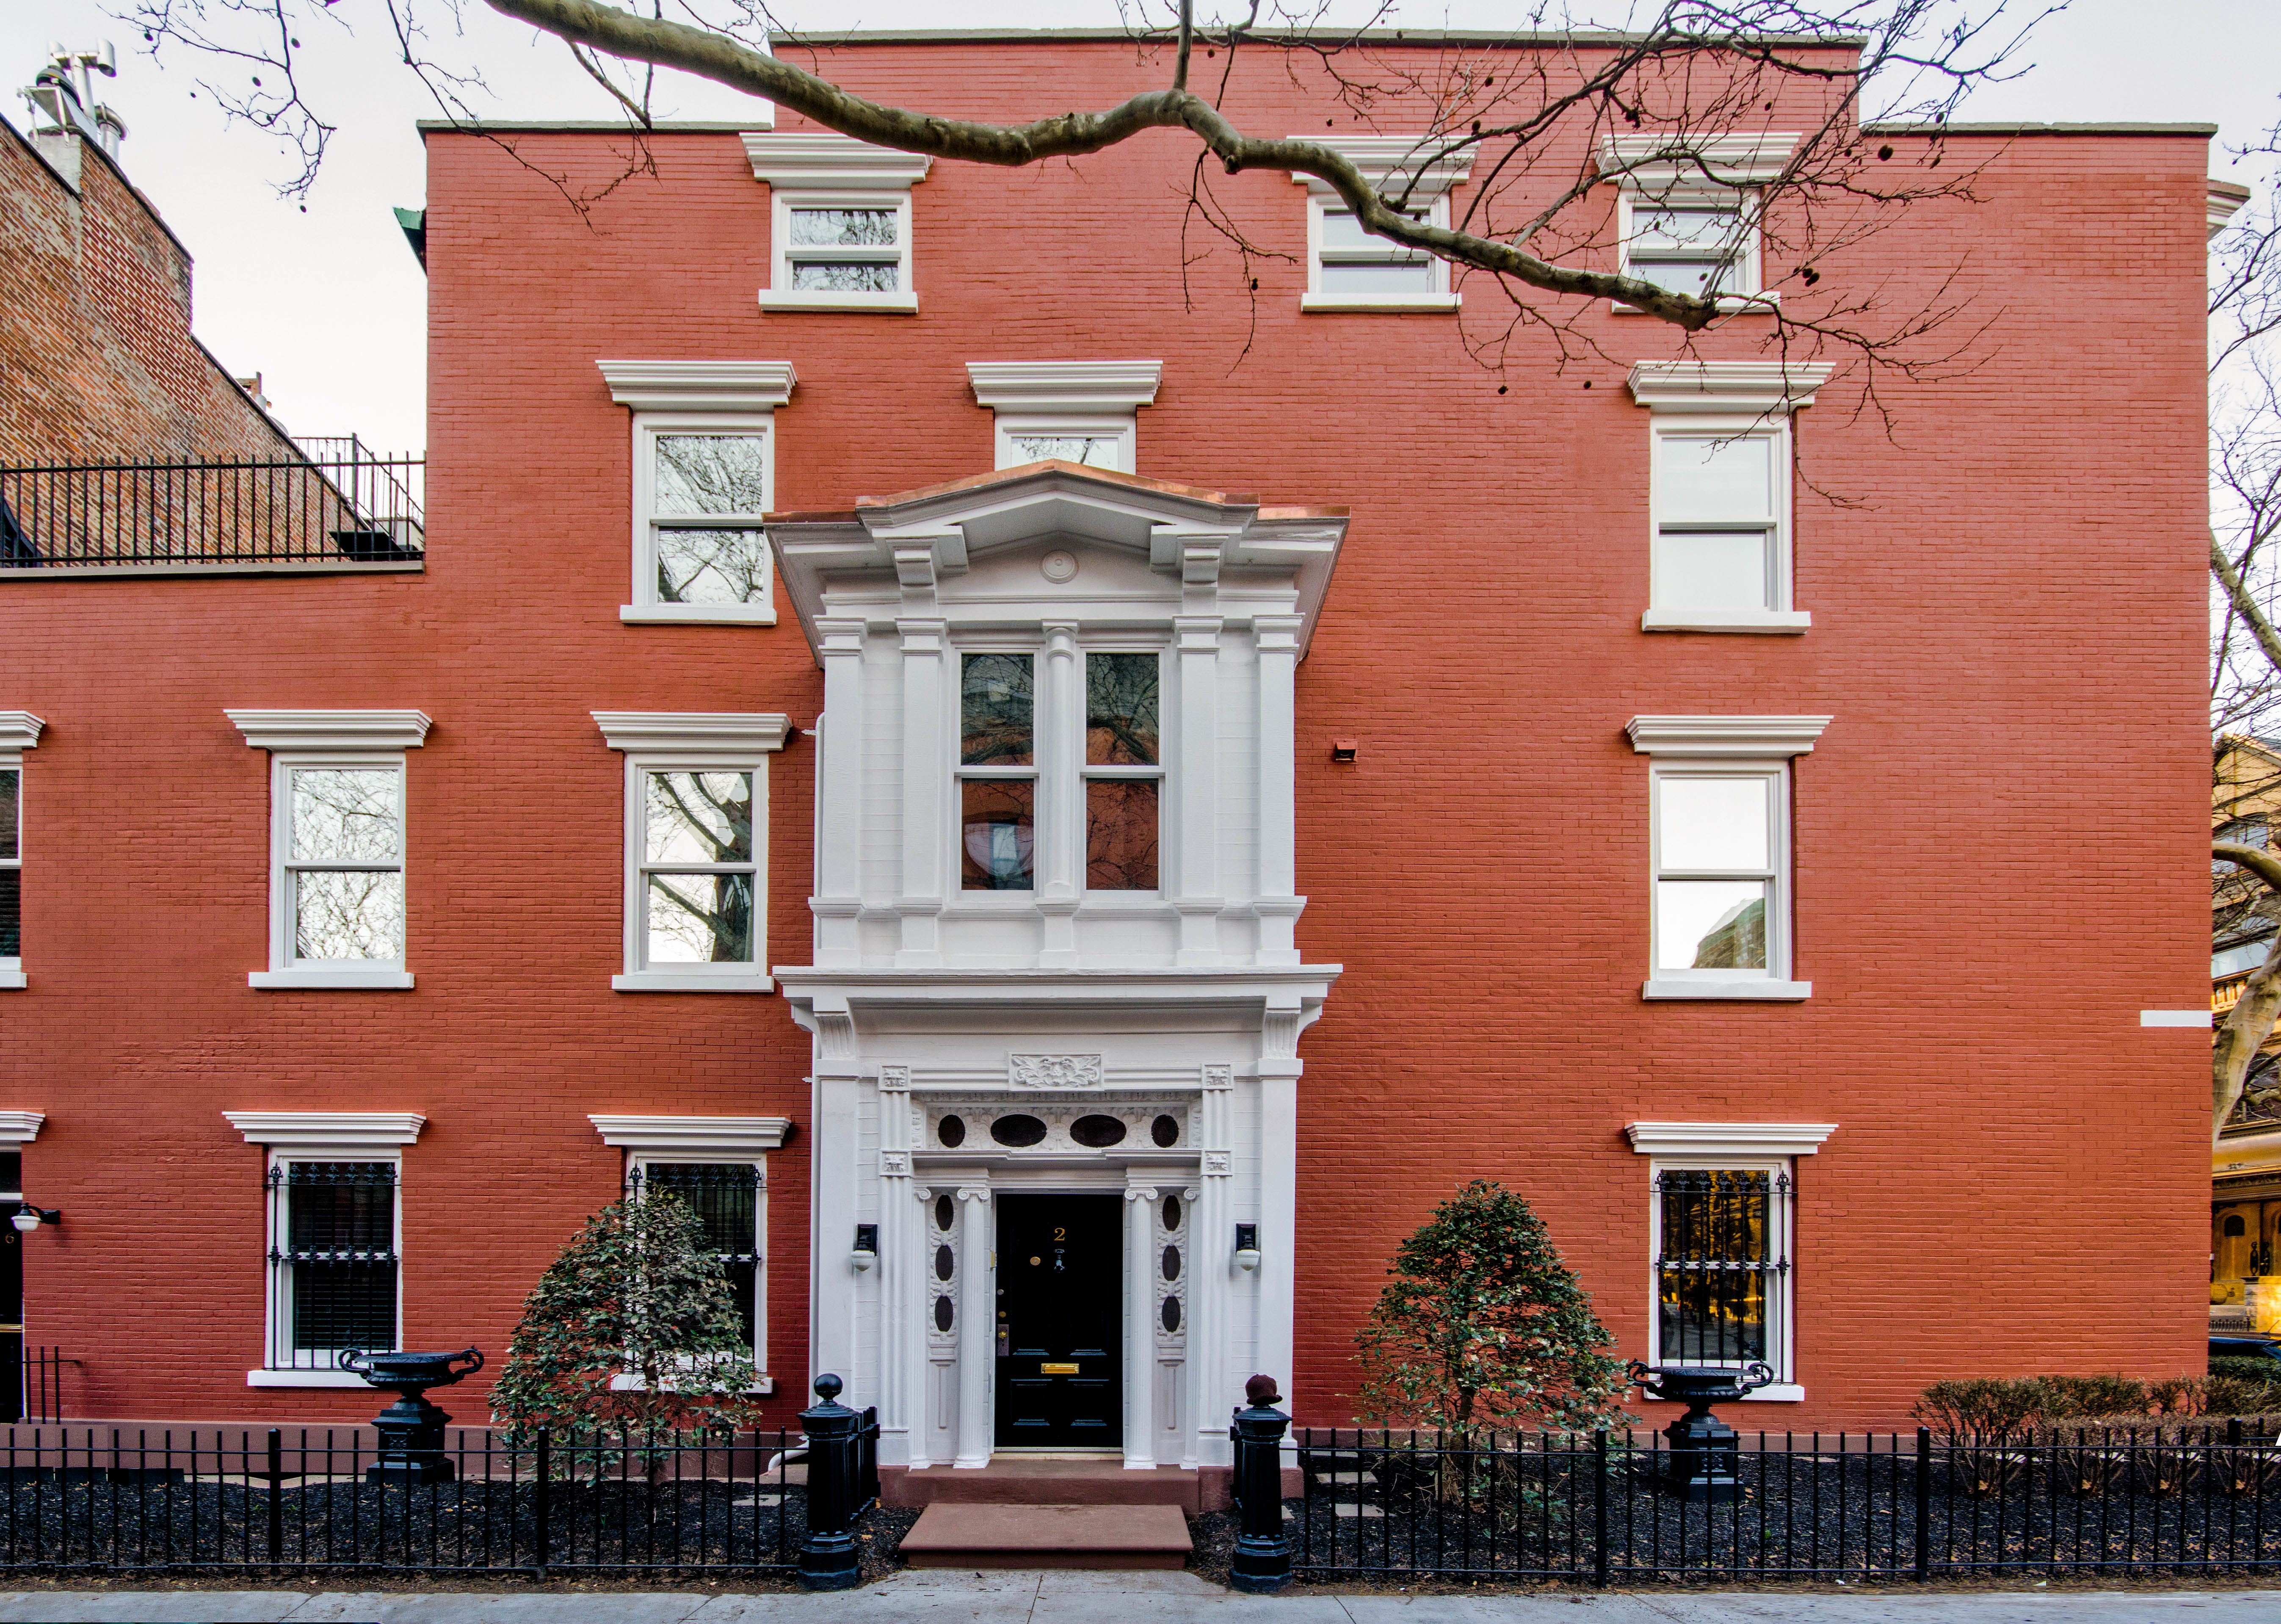 2 sidney place, facade, brooklyn heights, historic townhouse,